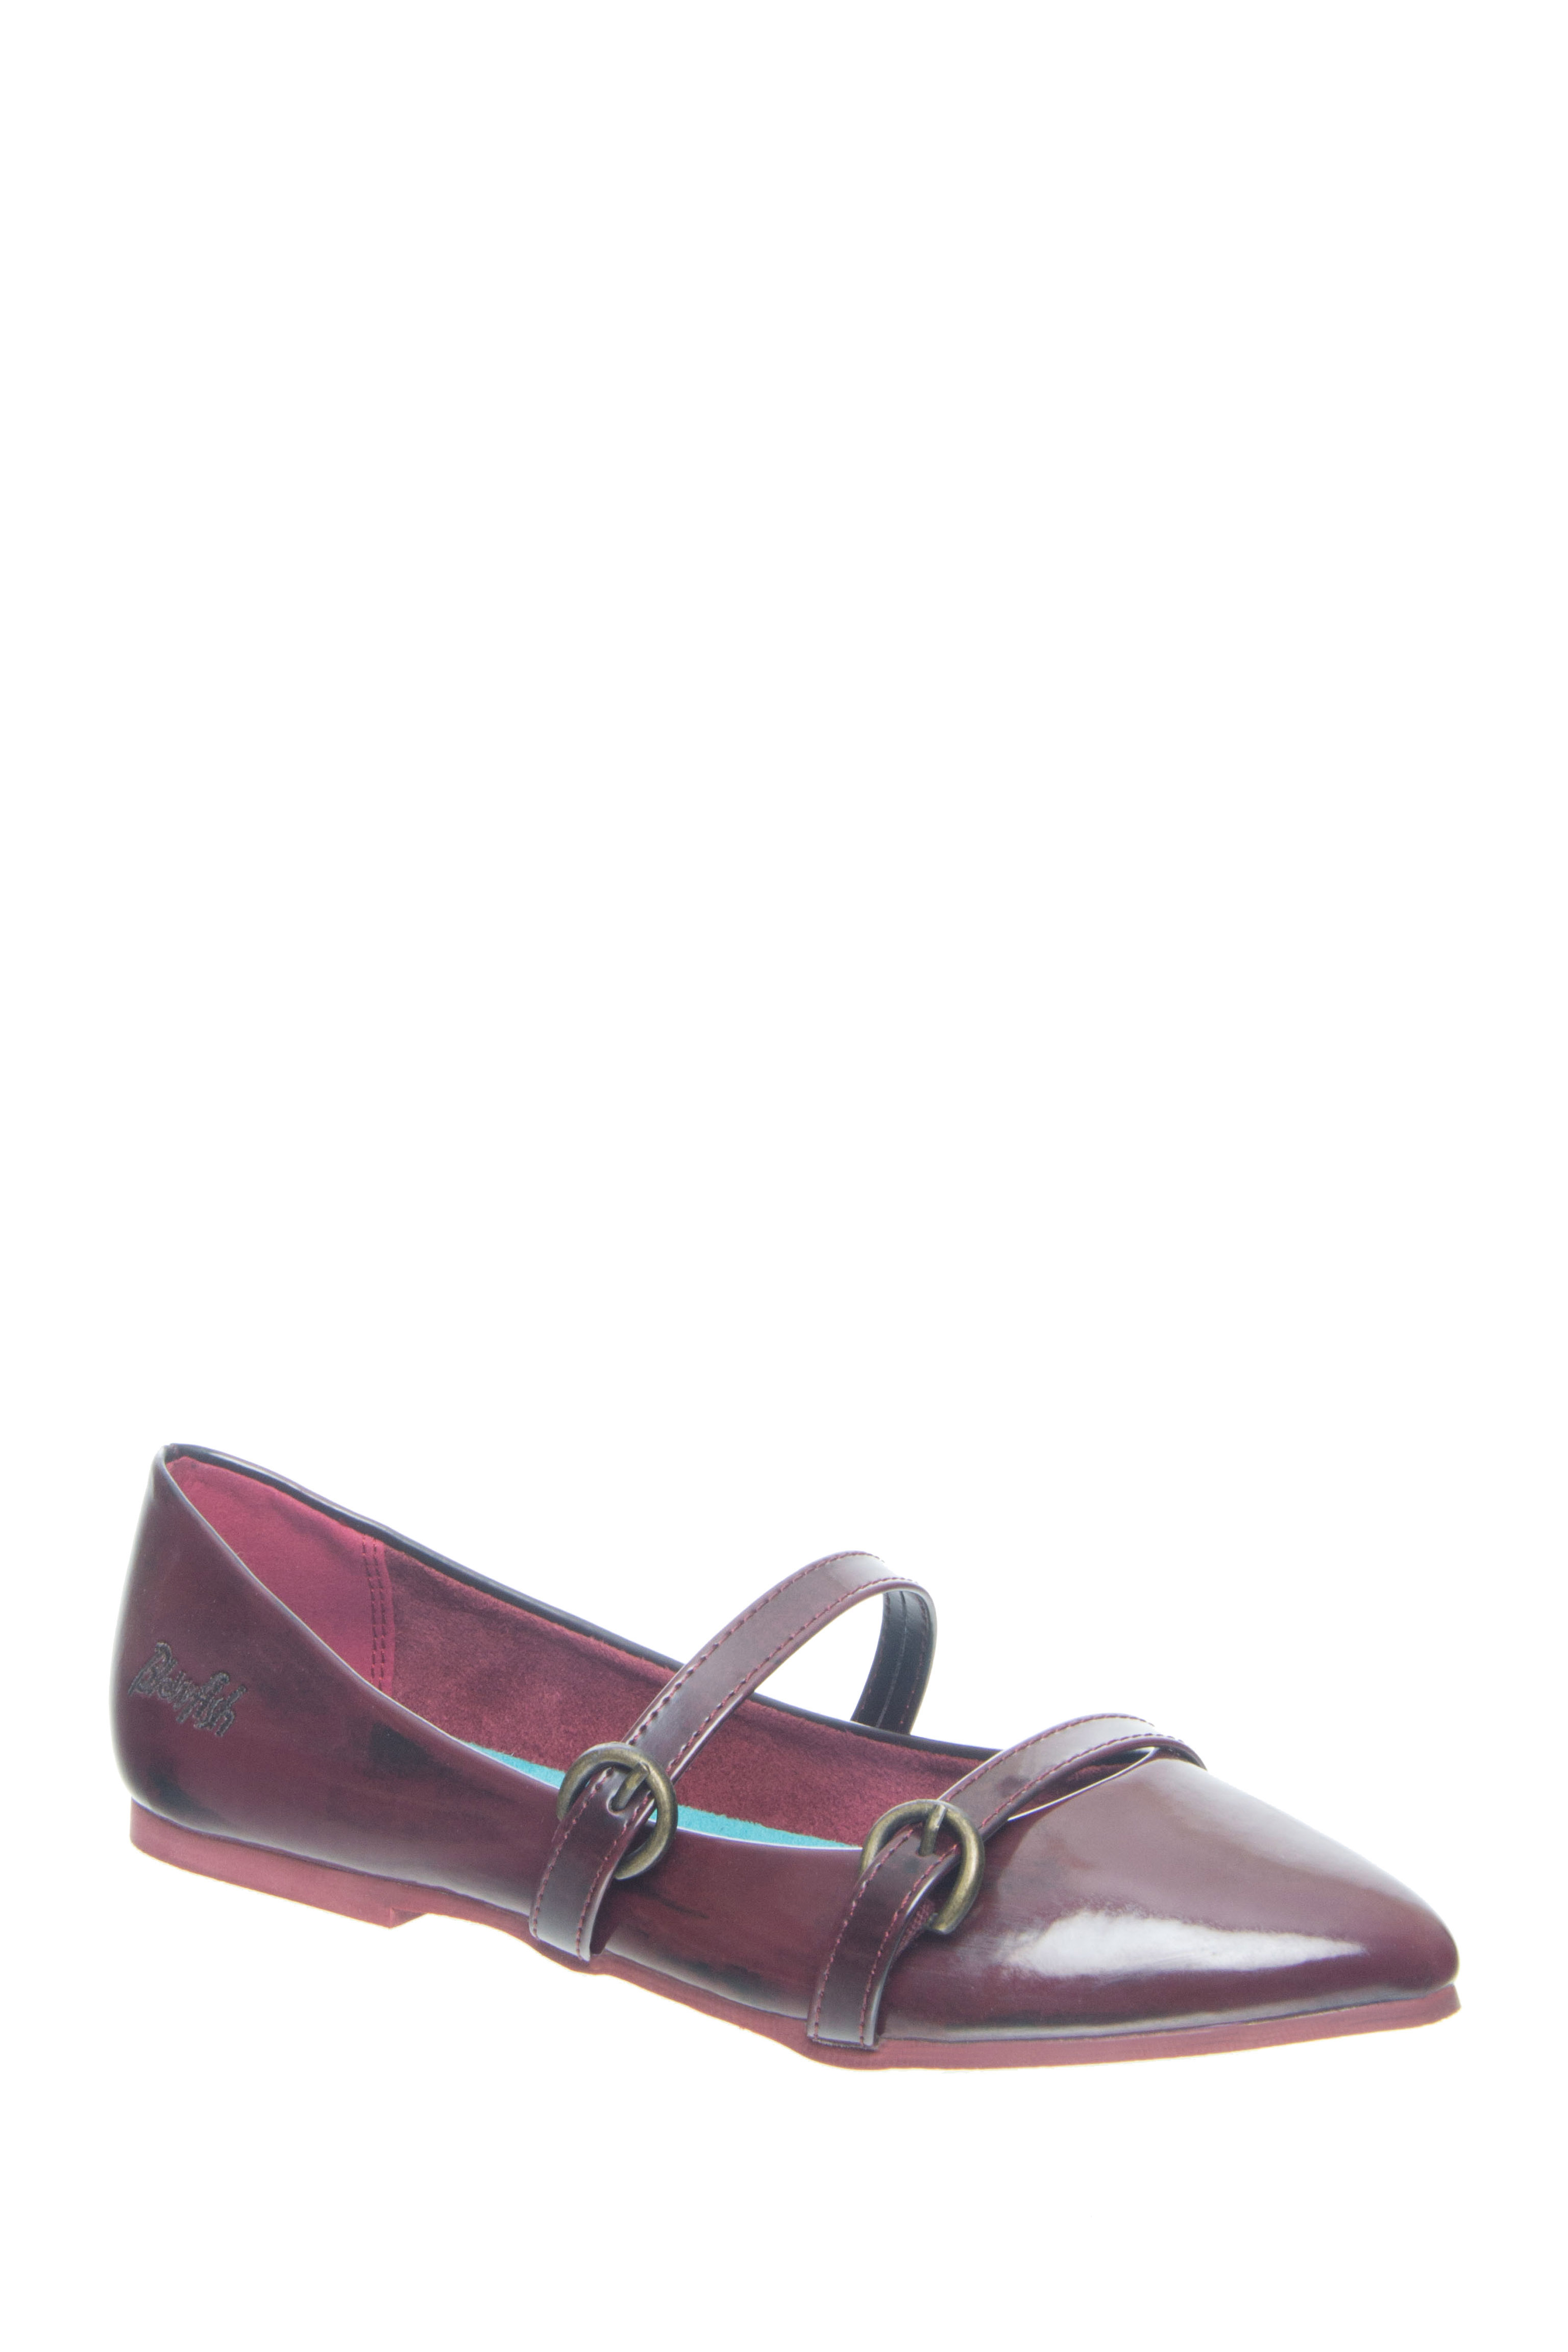 Blowfish Zaza Pointed-Toe Flats - Oxblood